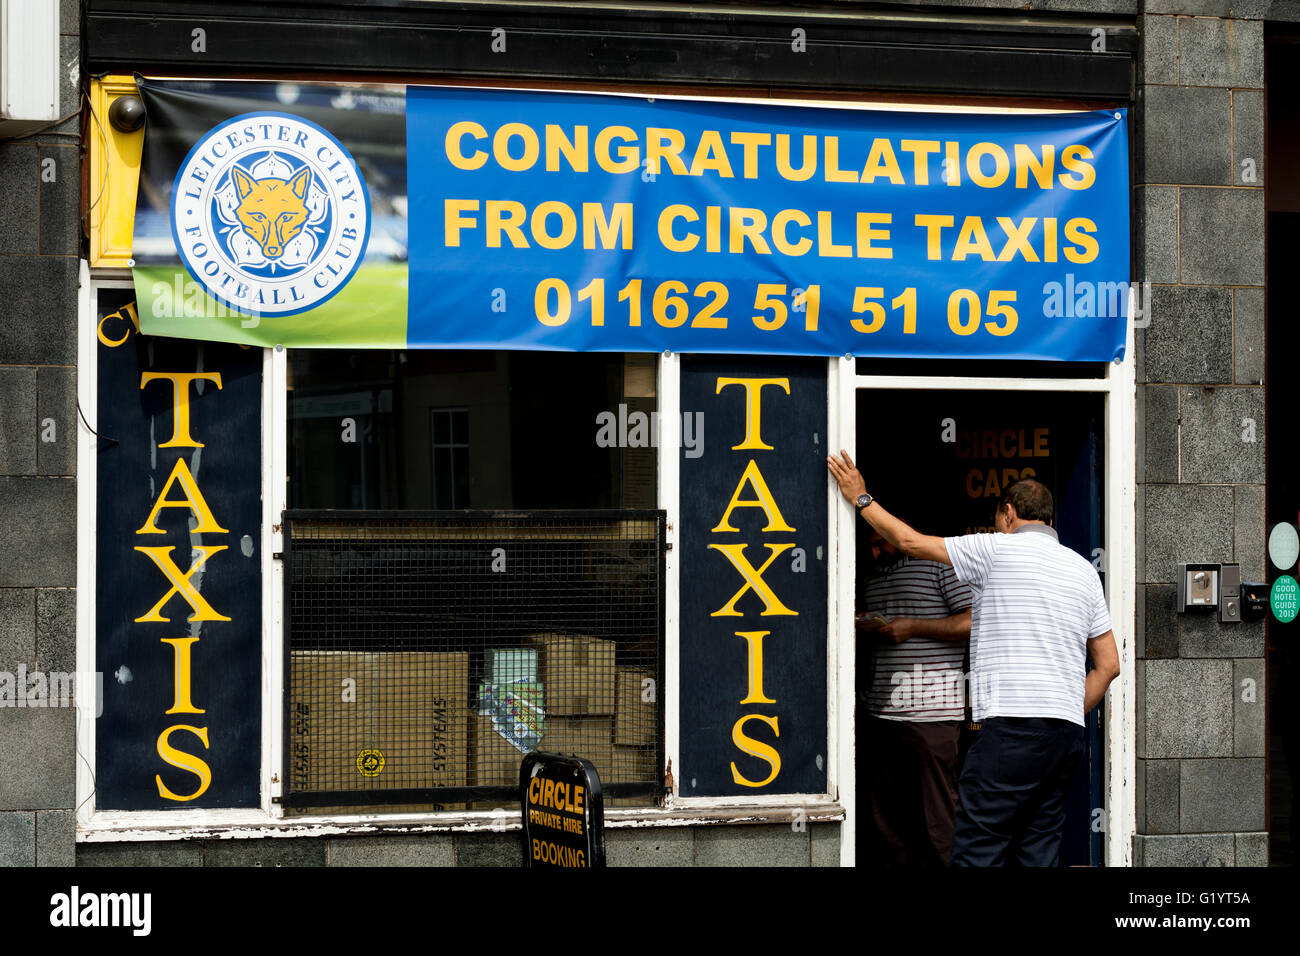 Leicester City Football Club congratulations banner, Leicester city centre, UK - Stock Image